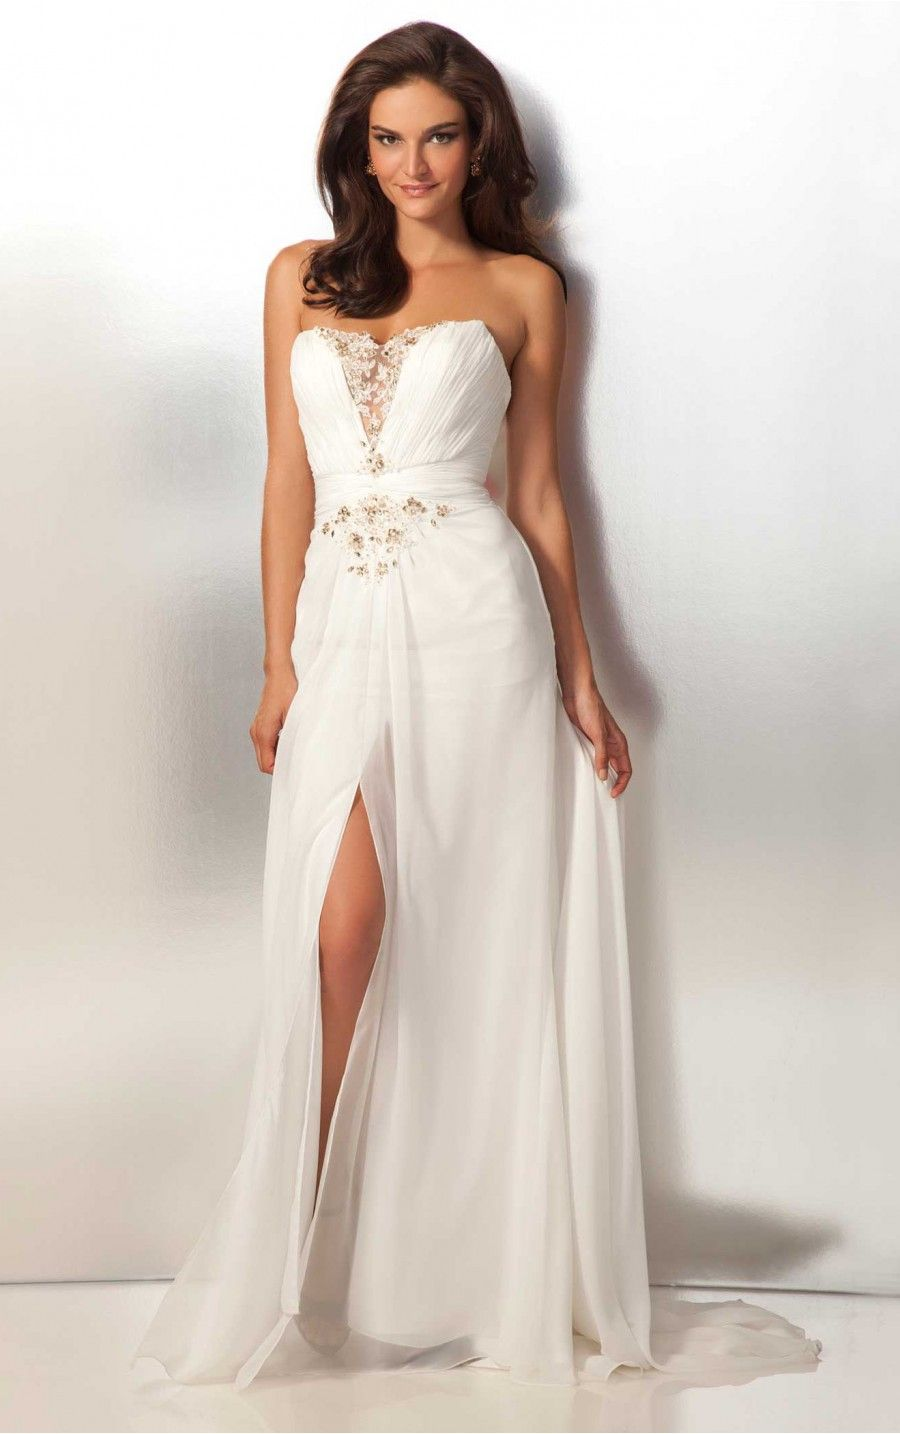 Elegant White Sheath Floor-length Sweetheart Dress [Dresses 10032 ...